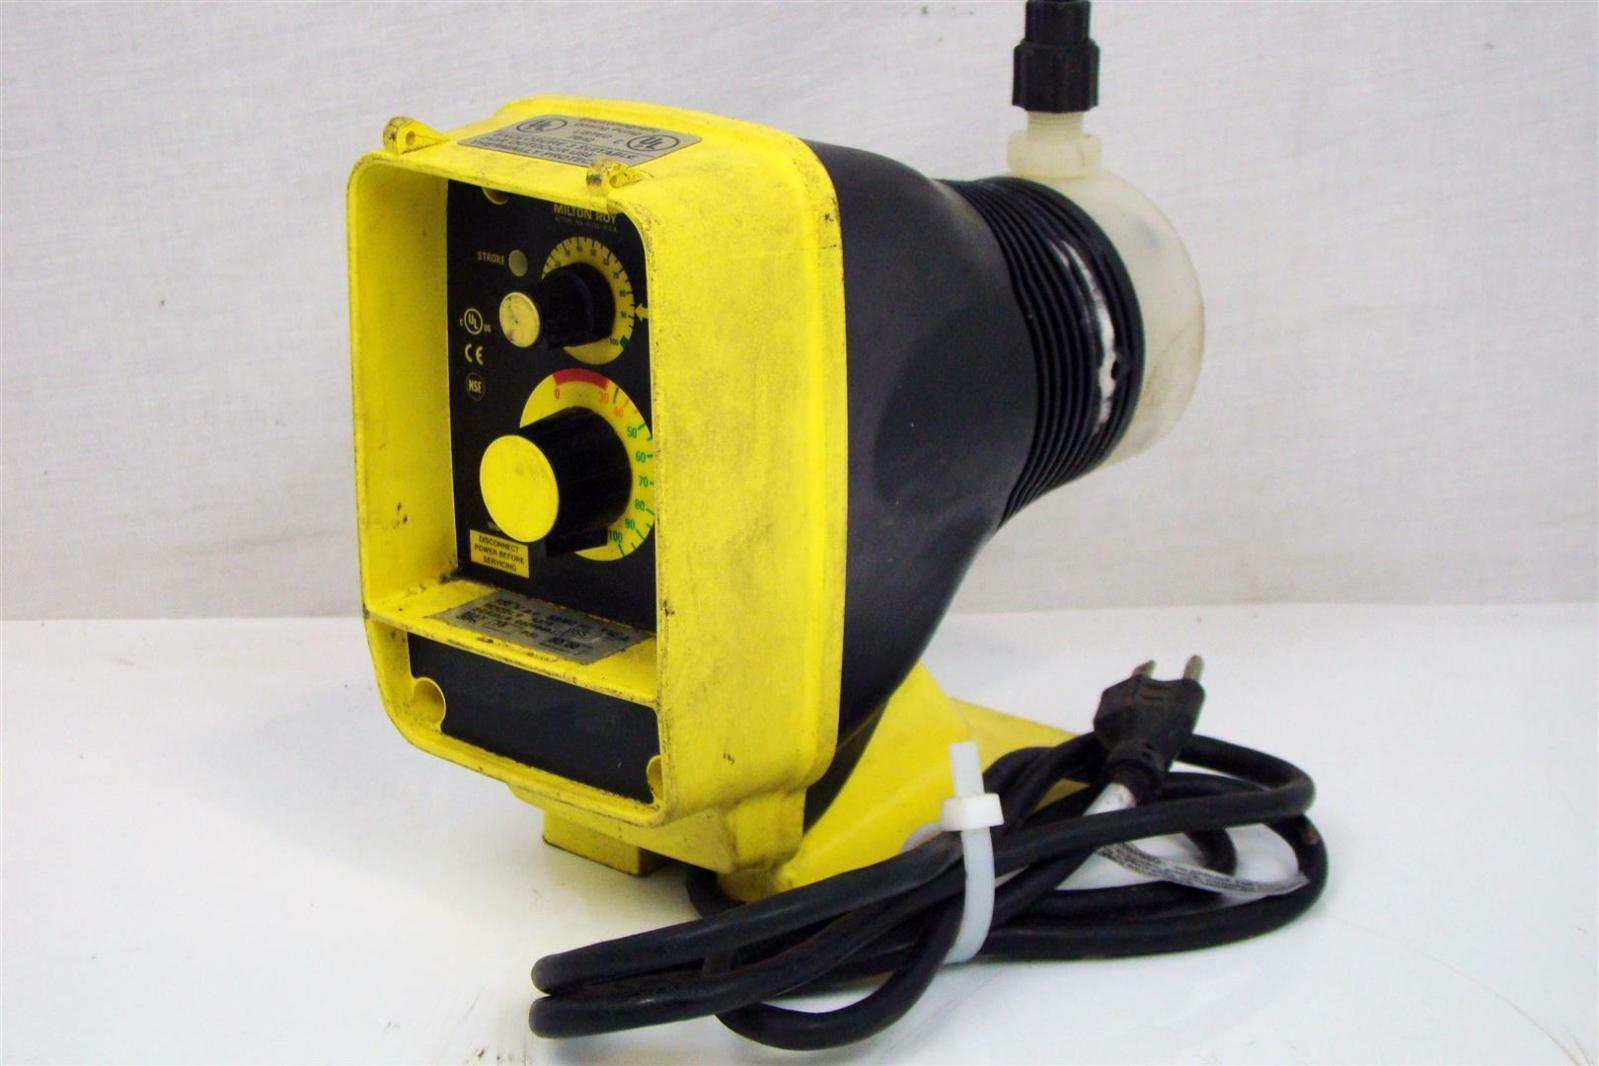 Swell Lmi Milton Roy Electromagnetic Dosing Pump 120V 1 4A 75Psi Aa181 Wiring Digital Resources Bioskbiperorg